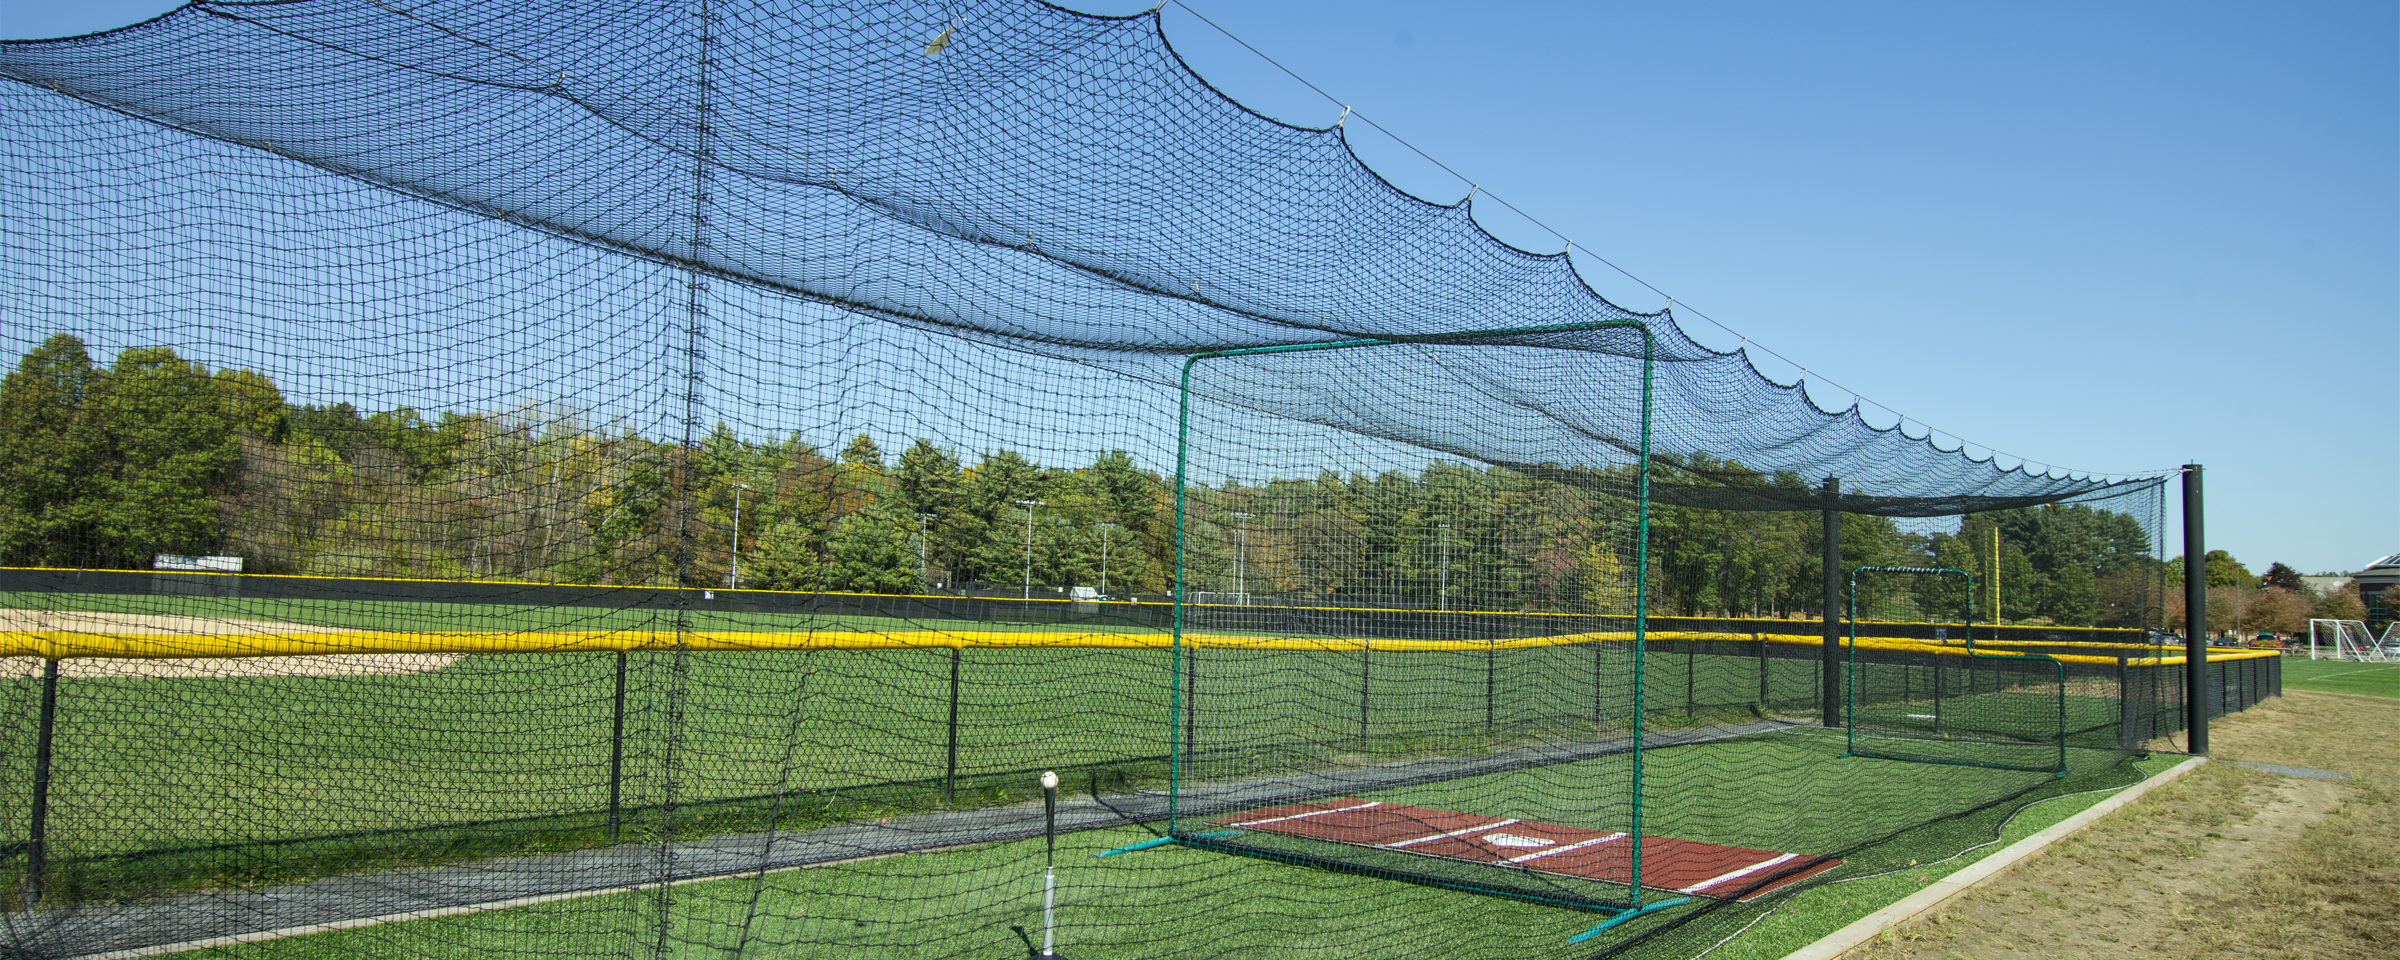 More information about the Mastodon batting cage system from On Deck Sports